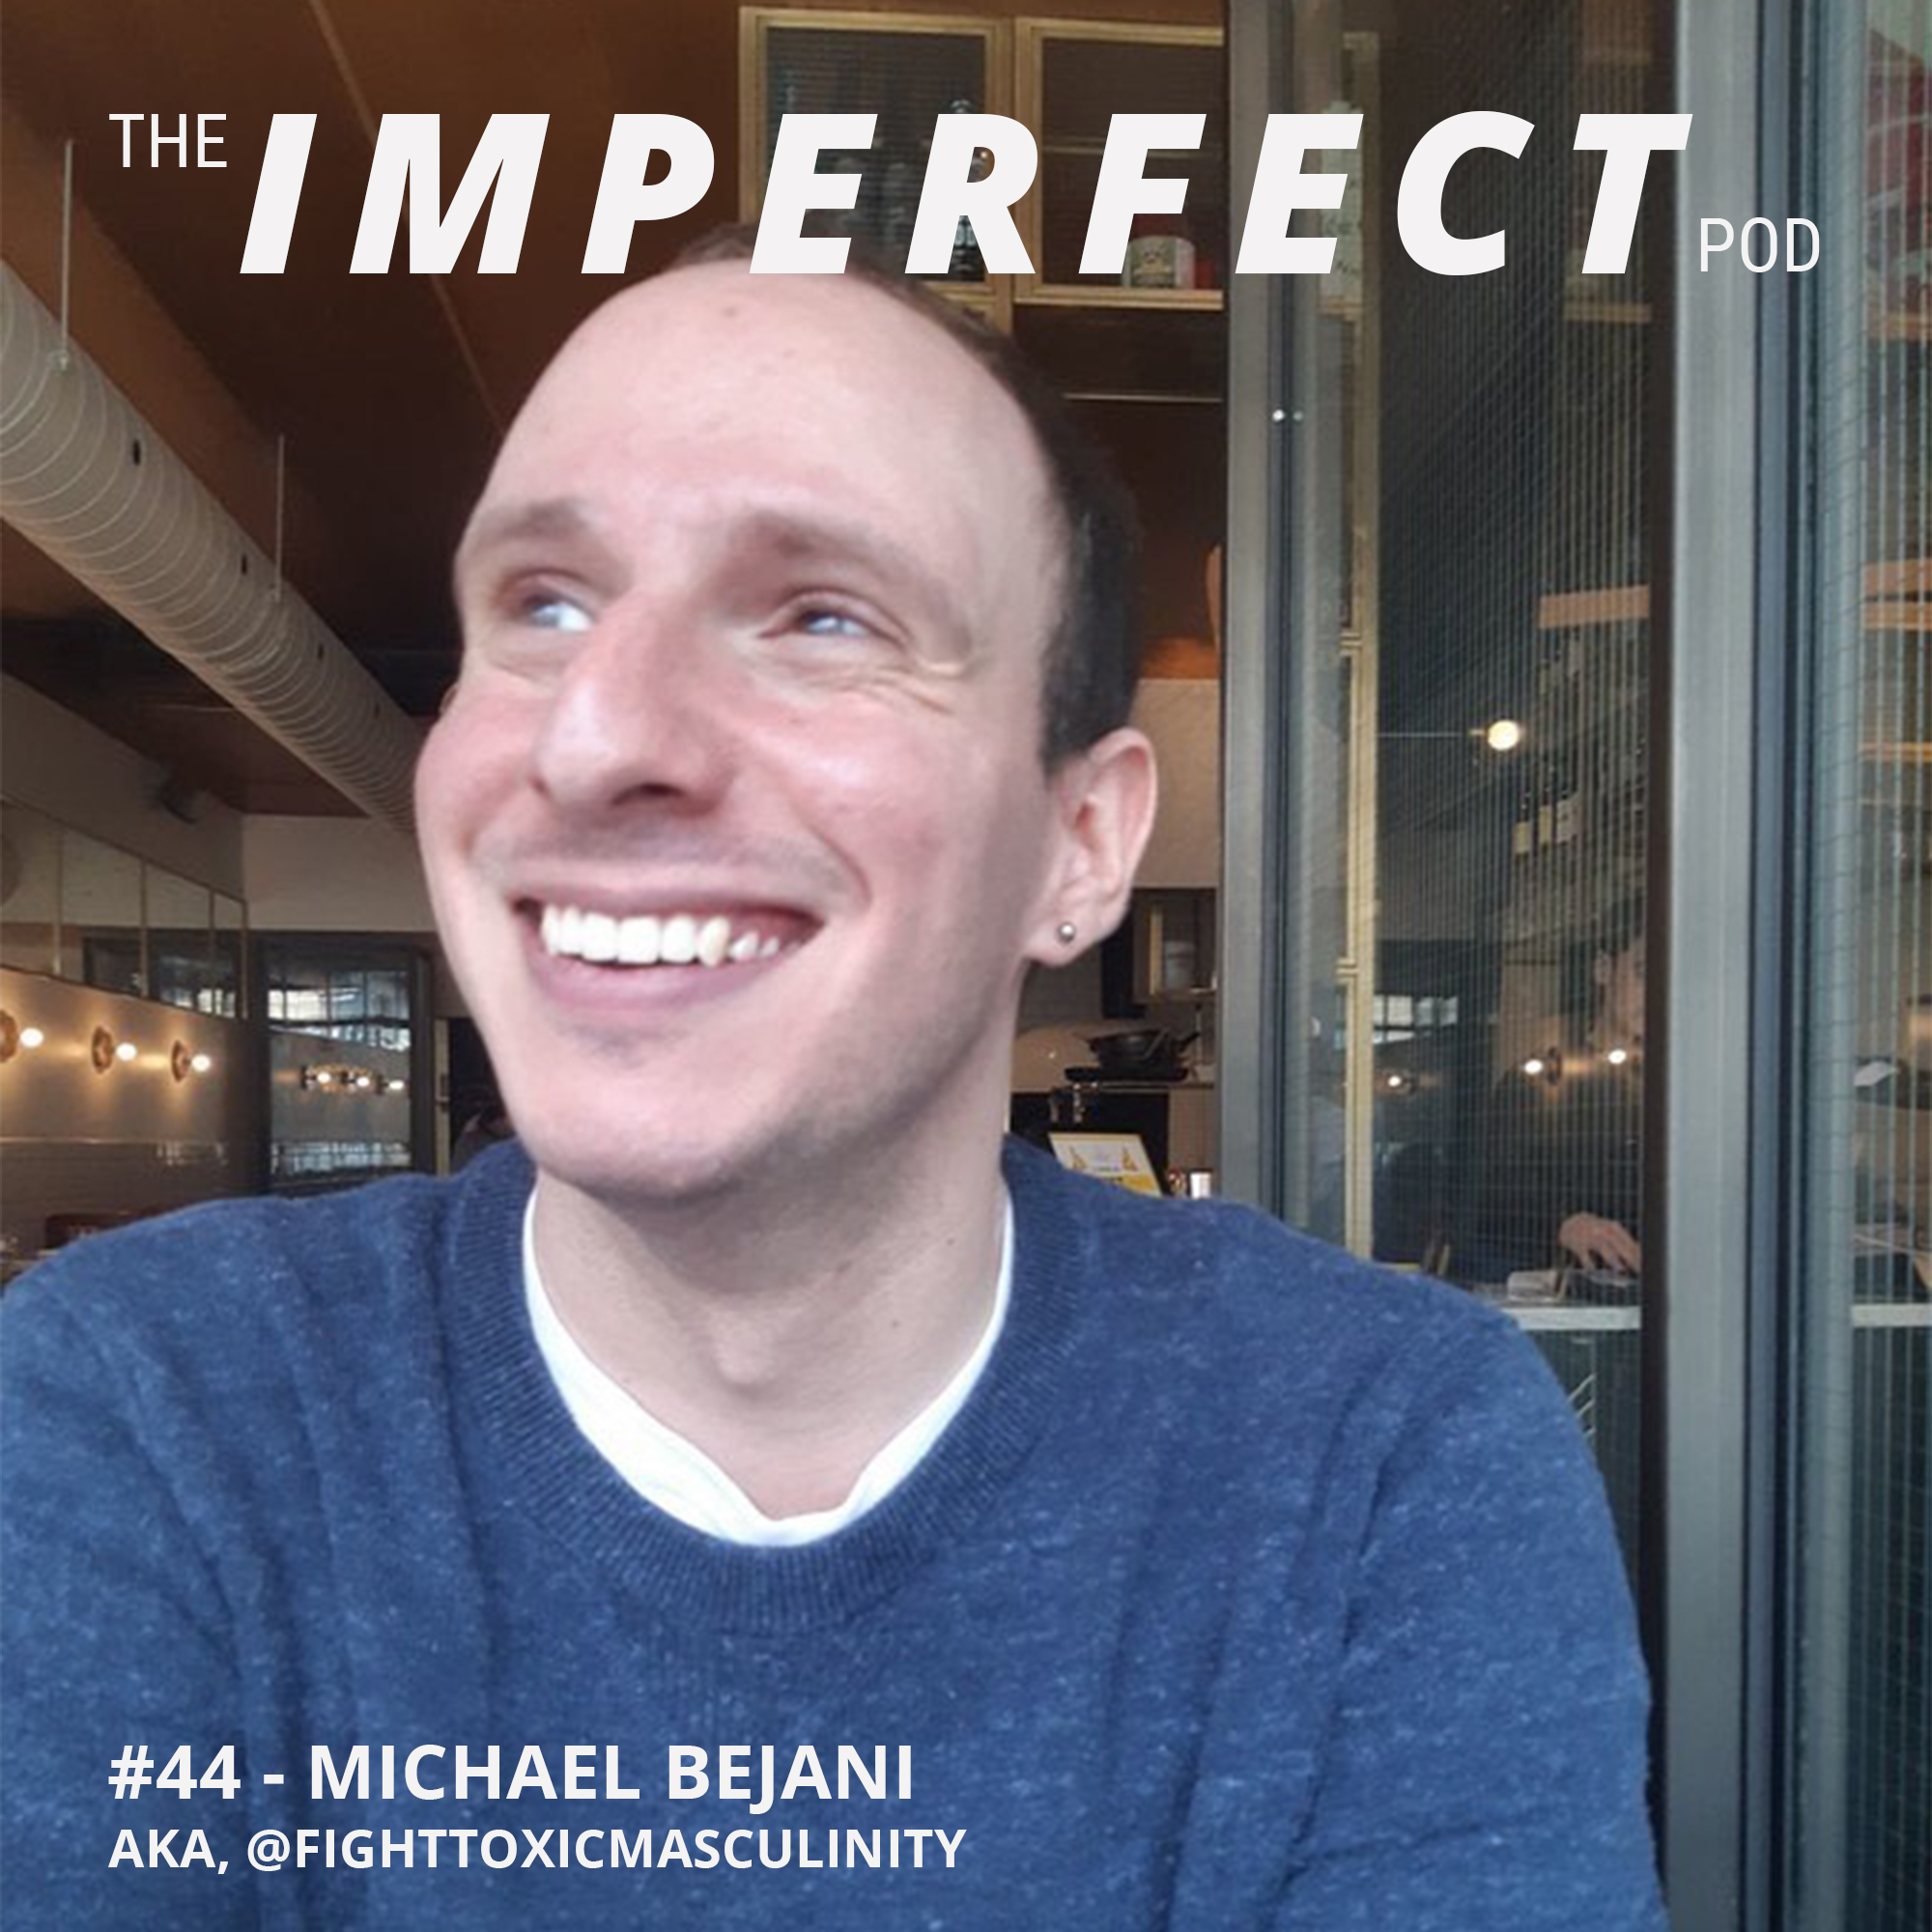 #44   How to Fight Toxic Masculinity With Kindness, Empathy and Love   Michael Bejani